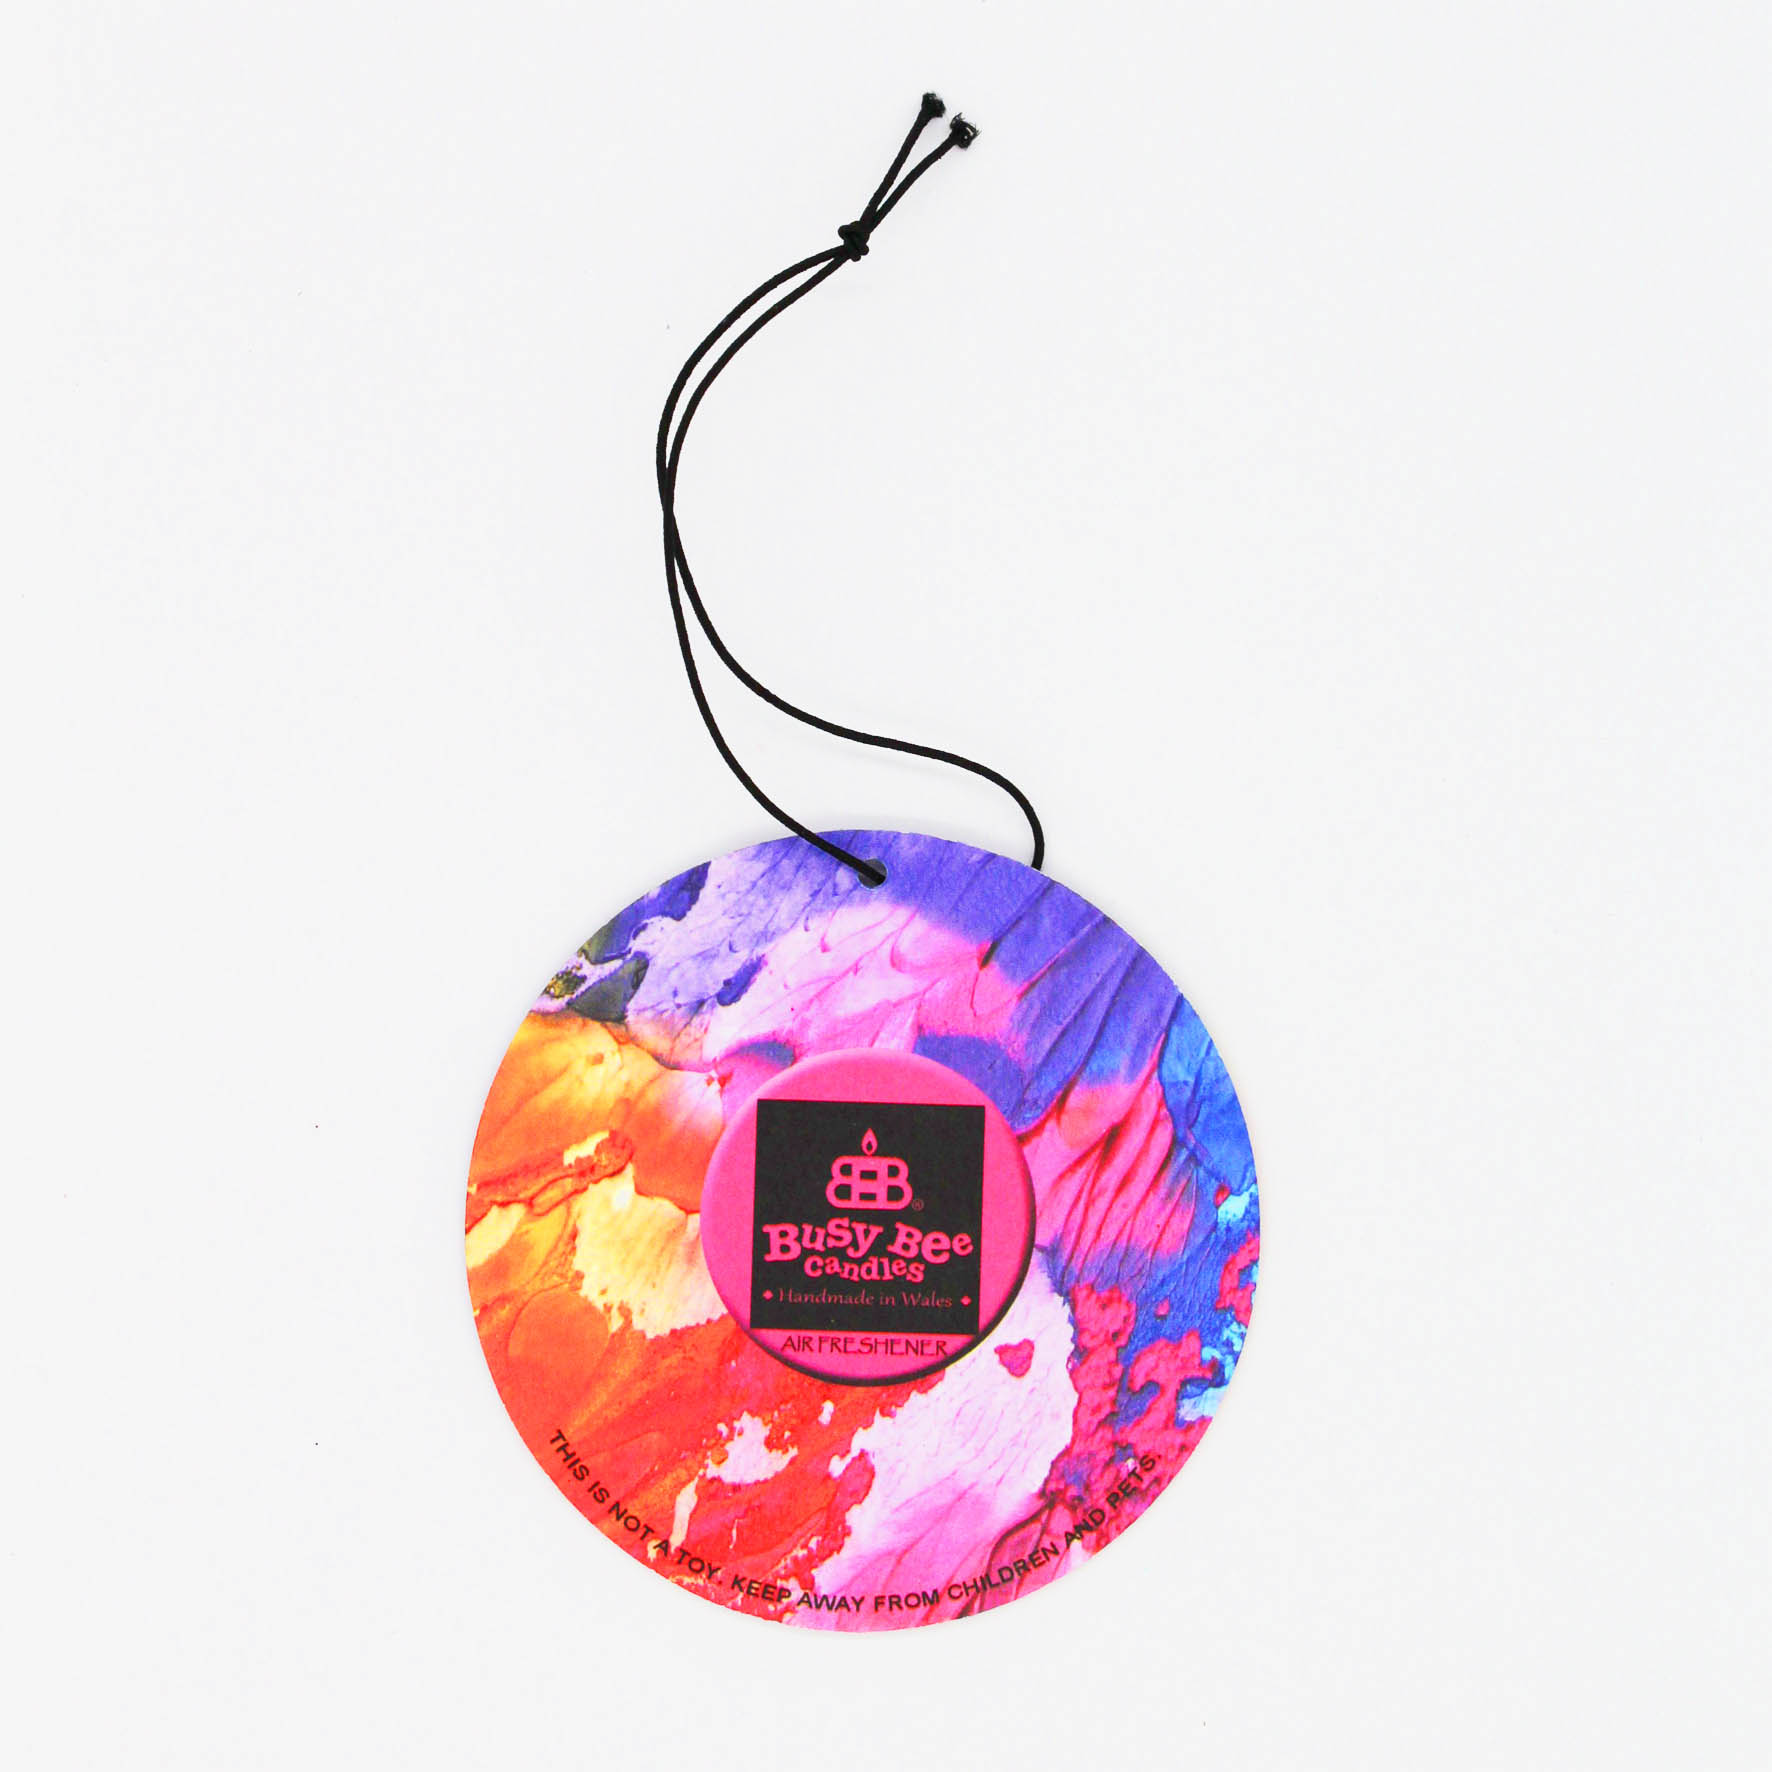 April Showers Hanging Air Freshener